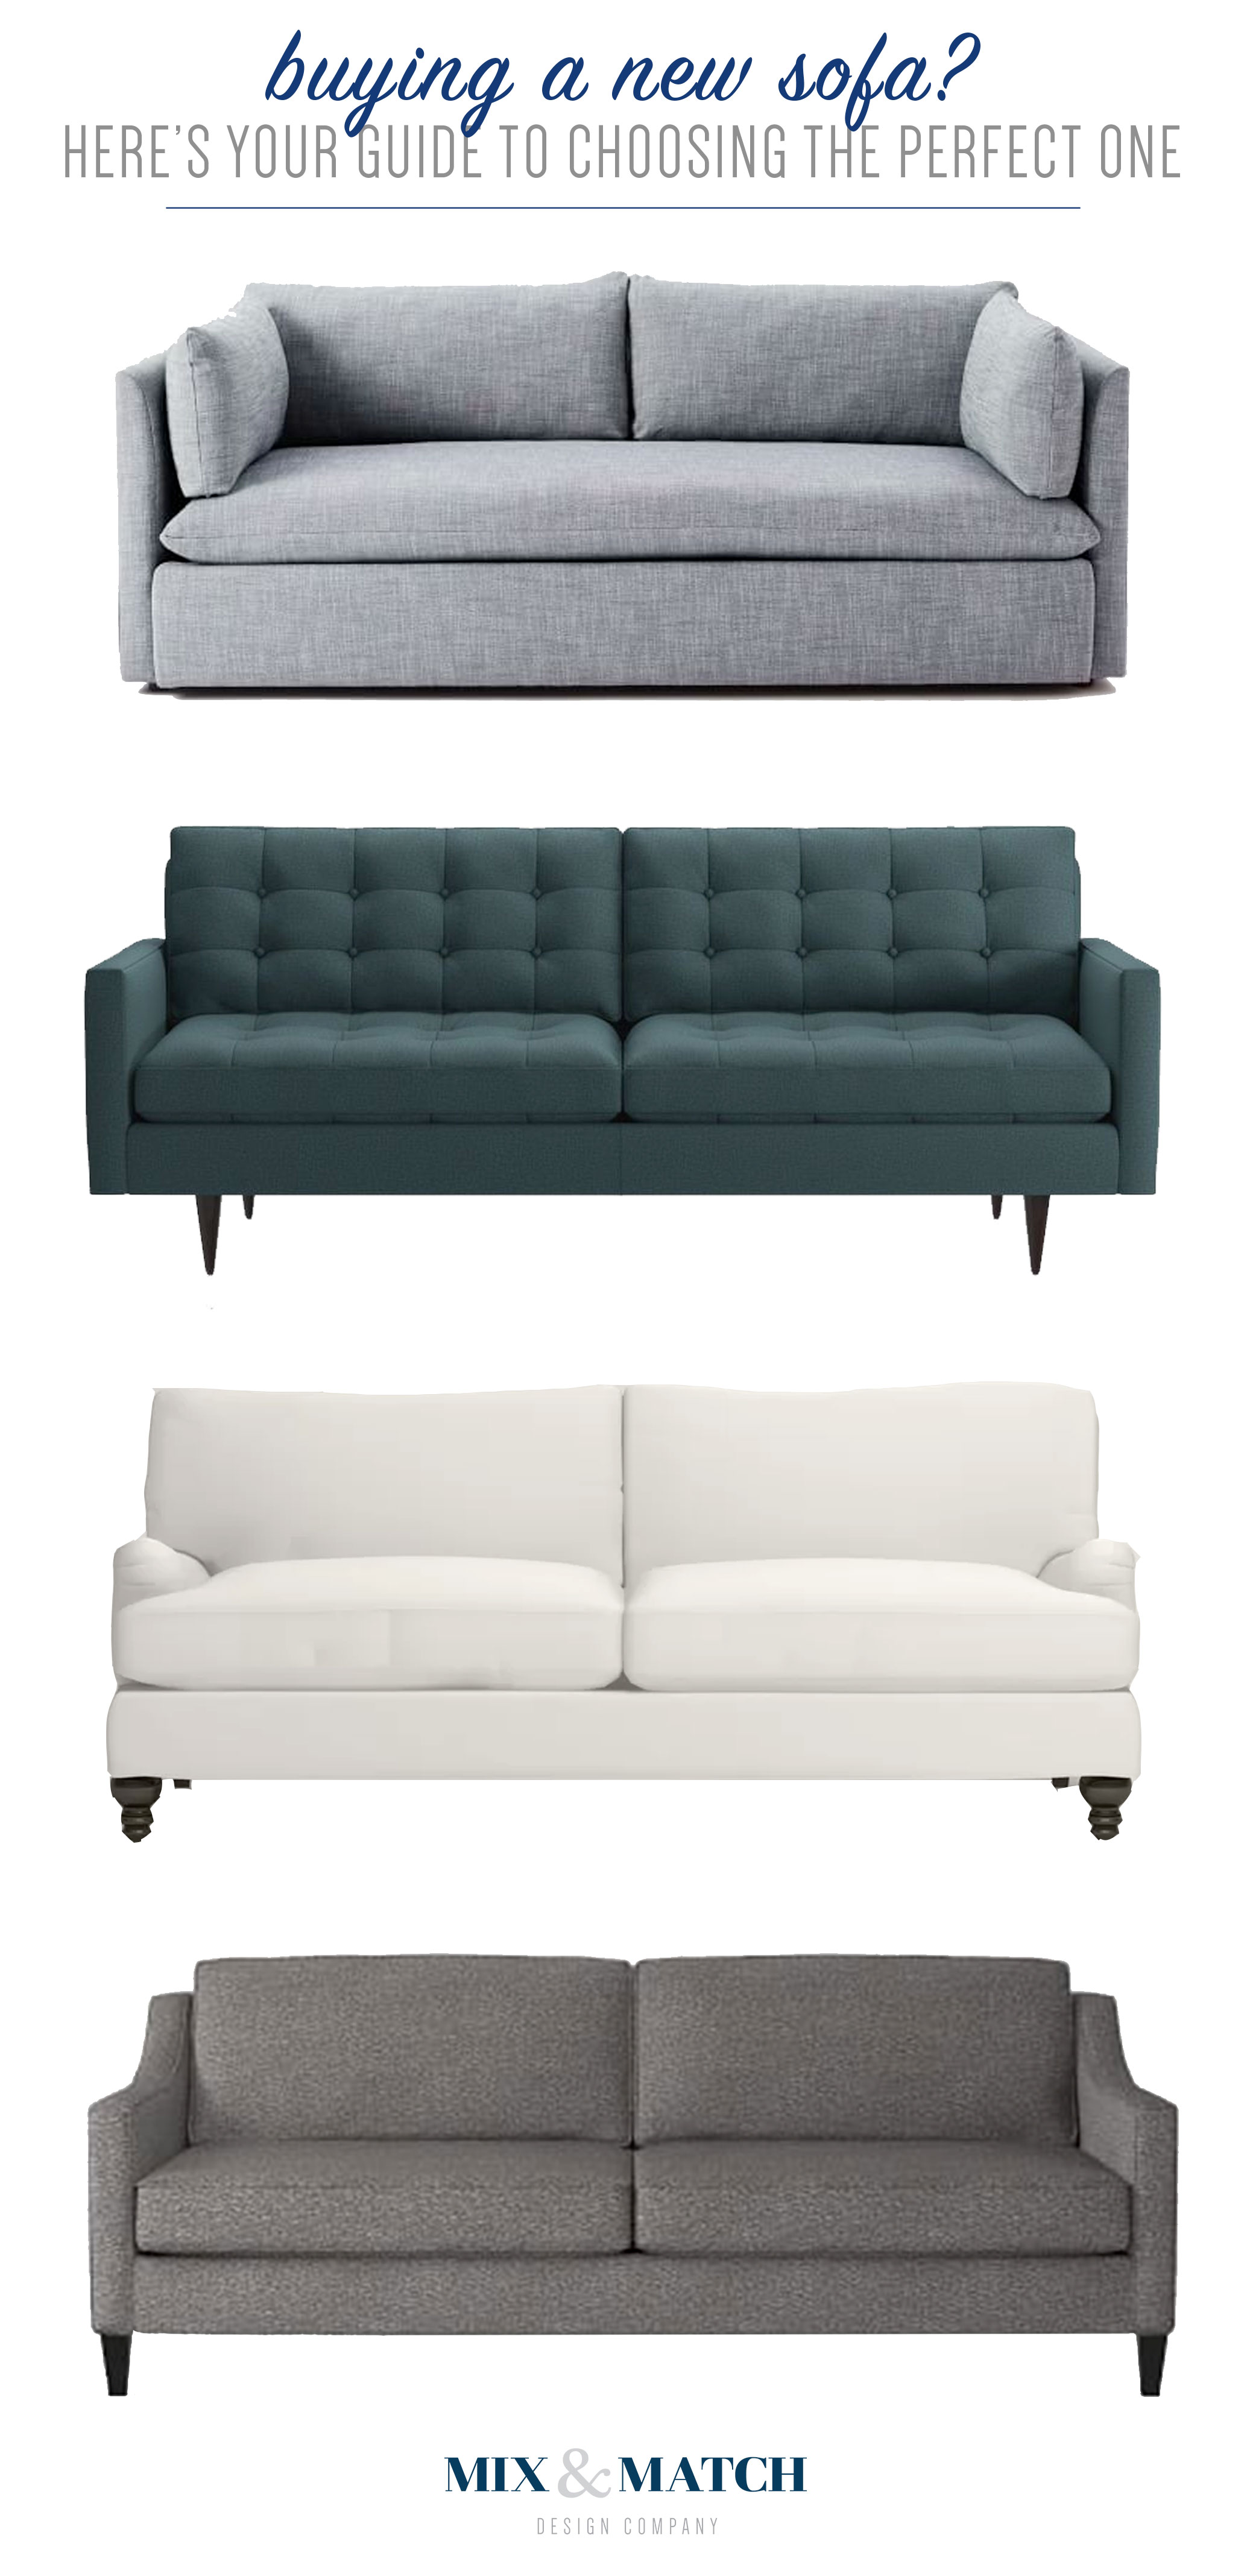 Buying a sofa soon? There's a lot to think about! Here's a guide to helping you think through how to find the perfect couch for your home. // Design guide, how to pick a sofa, shopping for a sofa, sofa buying tips.